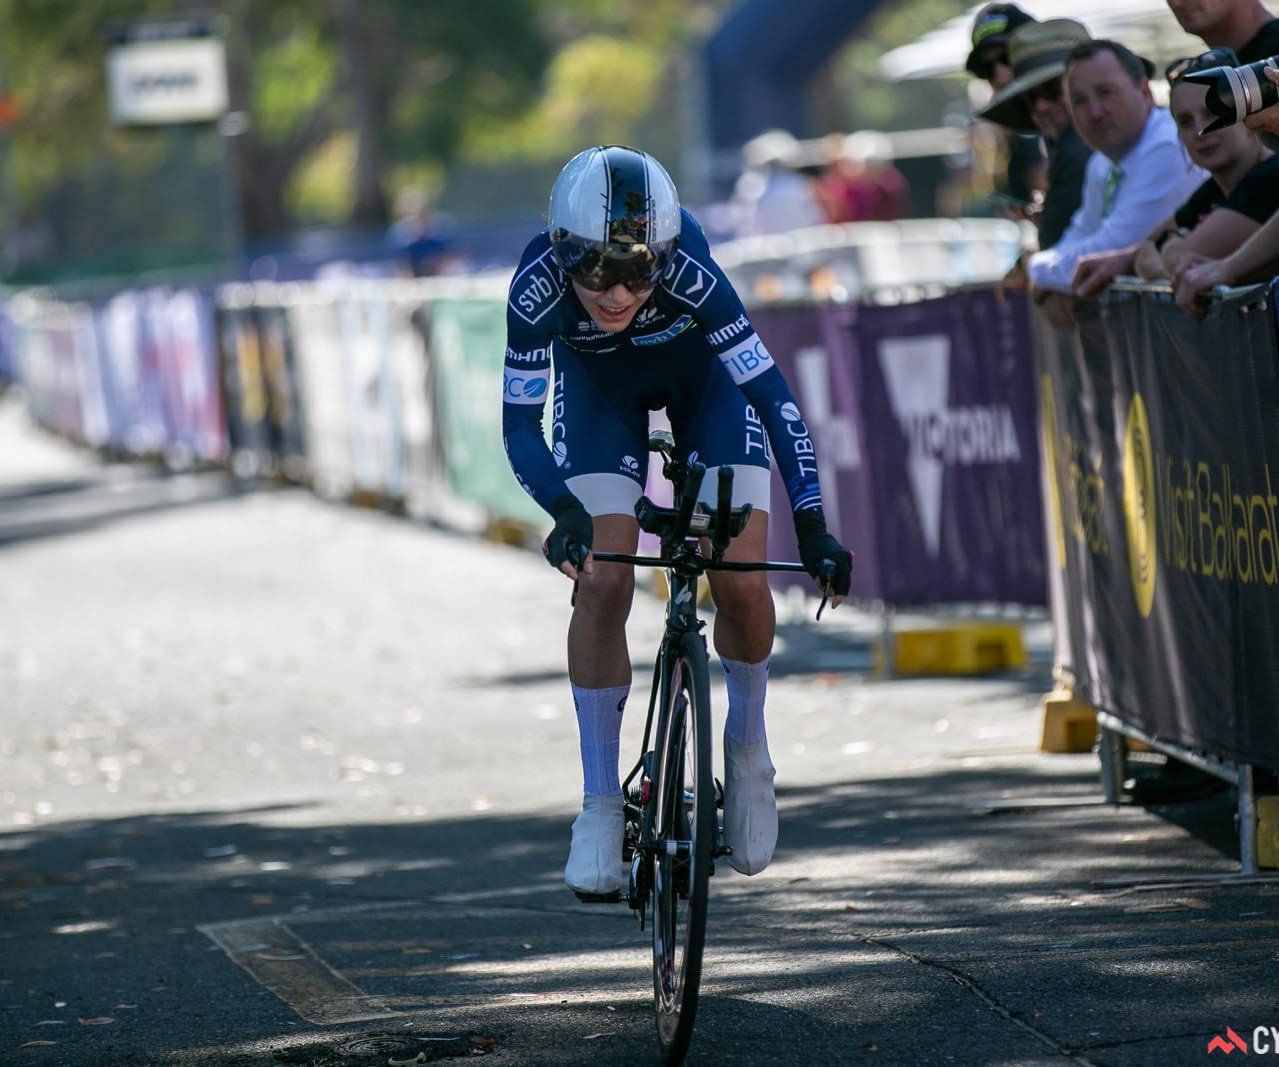 Sarah powers to the finish in the TT